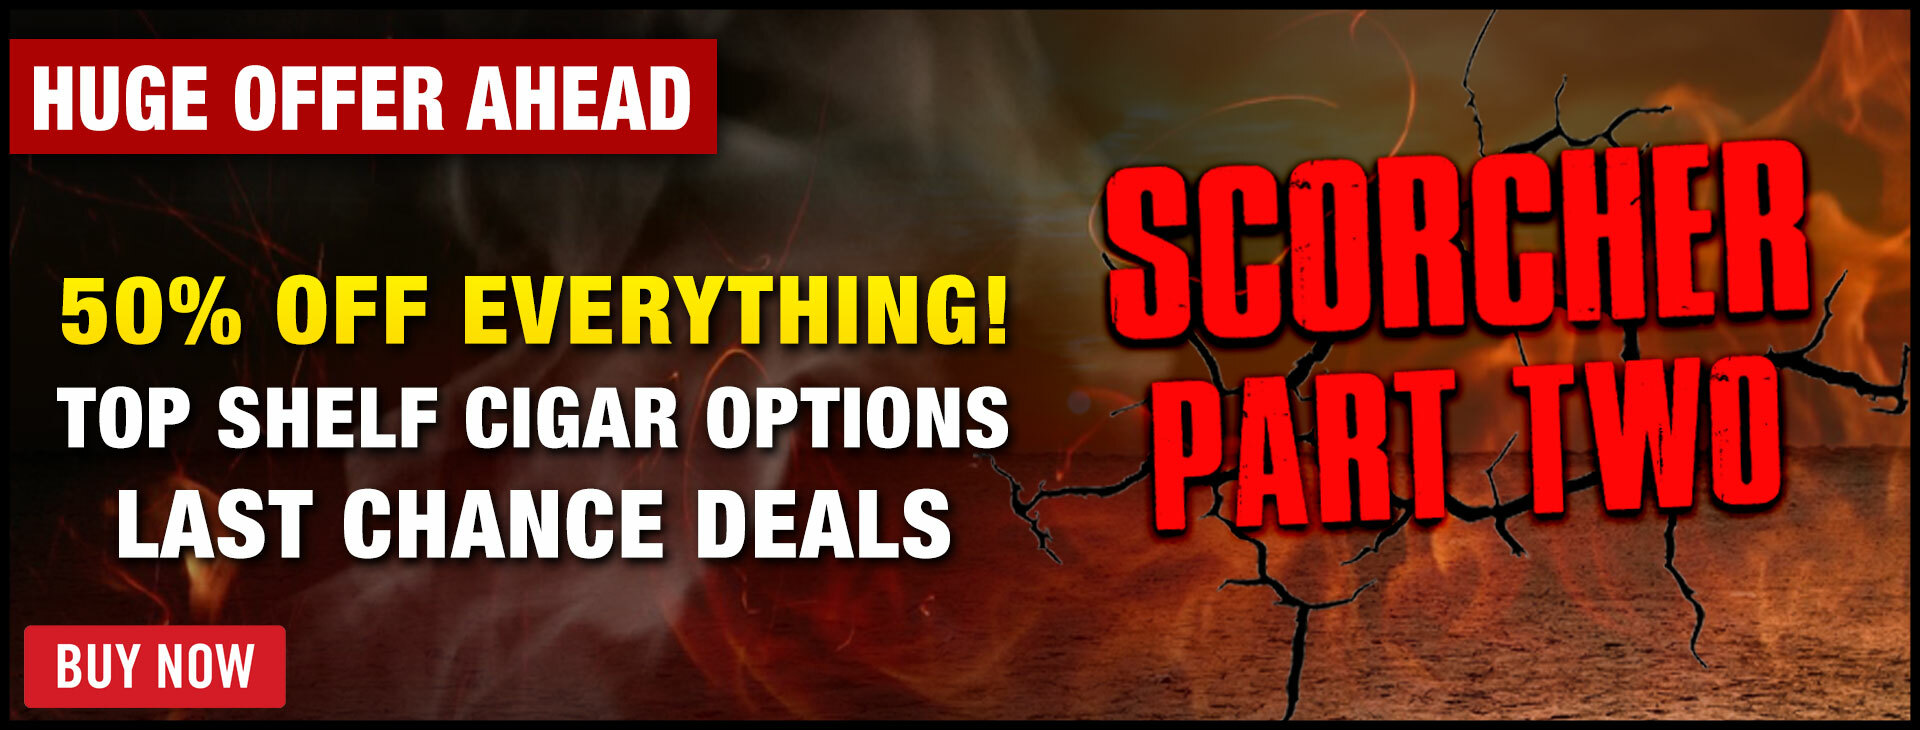 SCORCHER PART 2: 50% OFF ALL ITEMS!